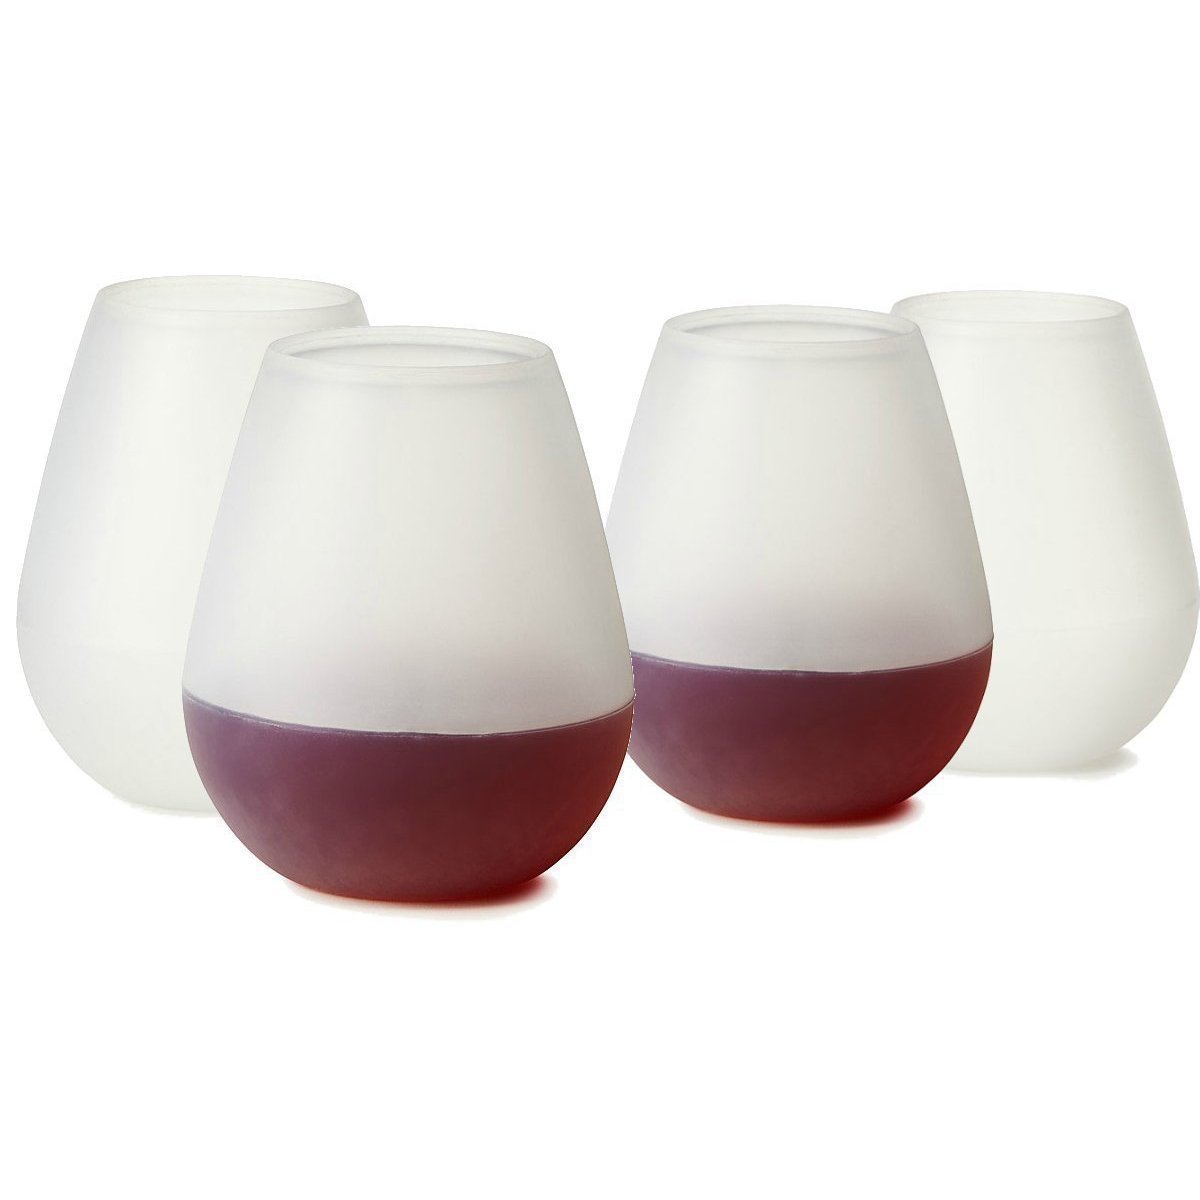 freshlove silicone wine glasses